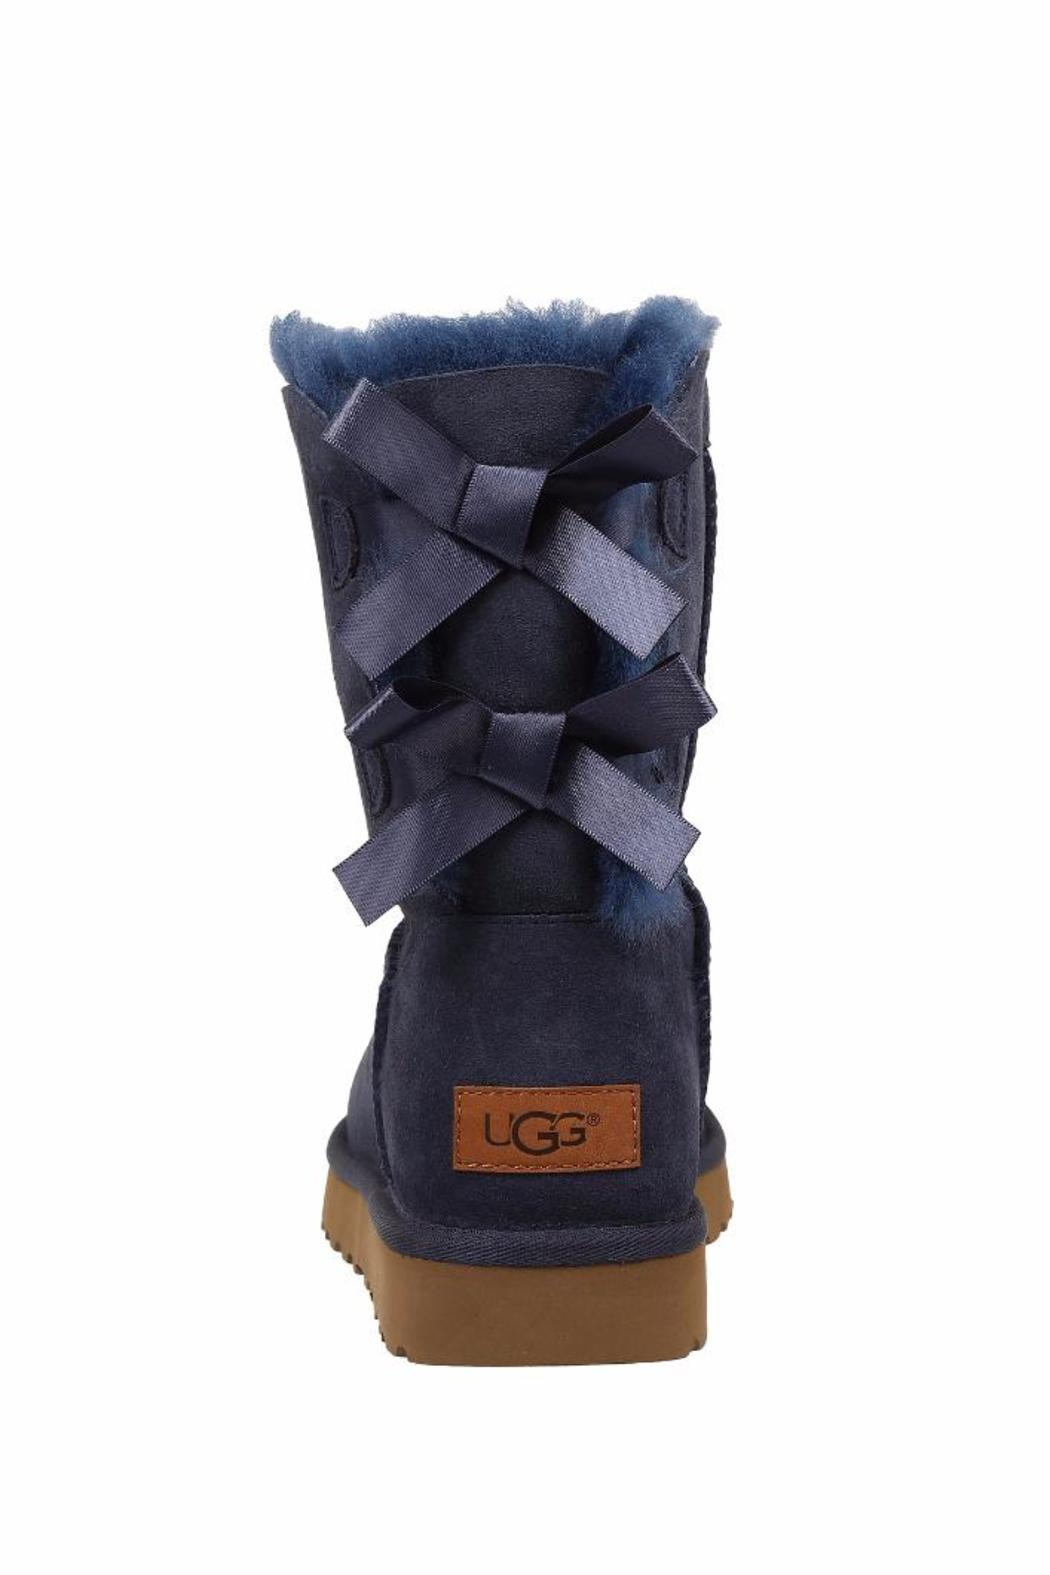 3 bow uggs nz